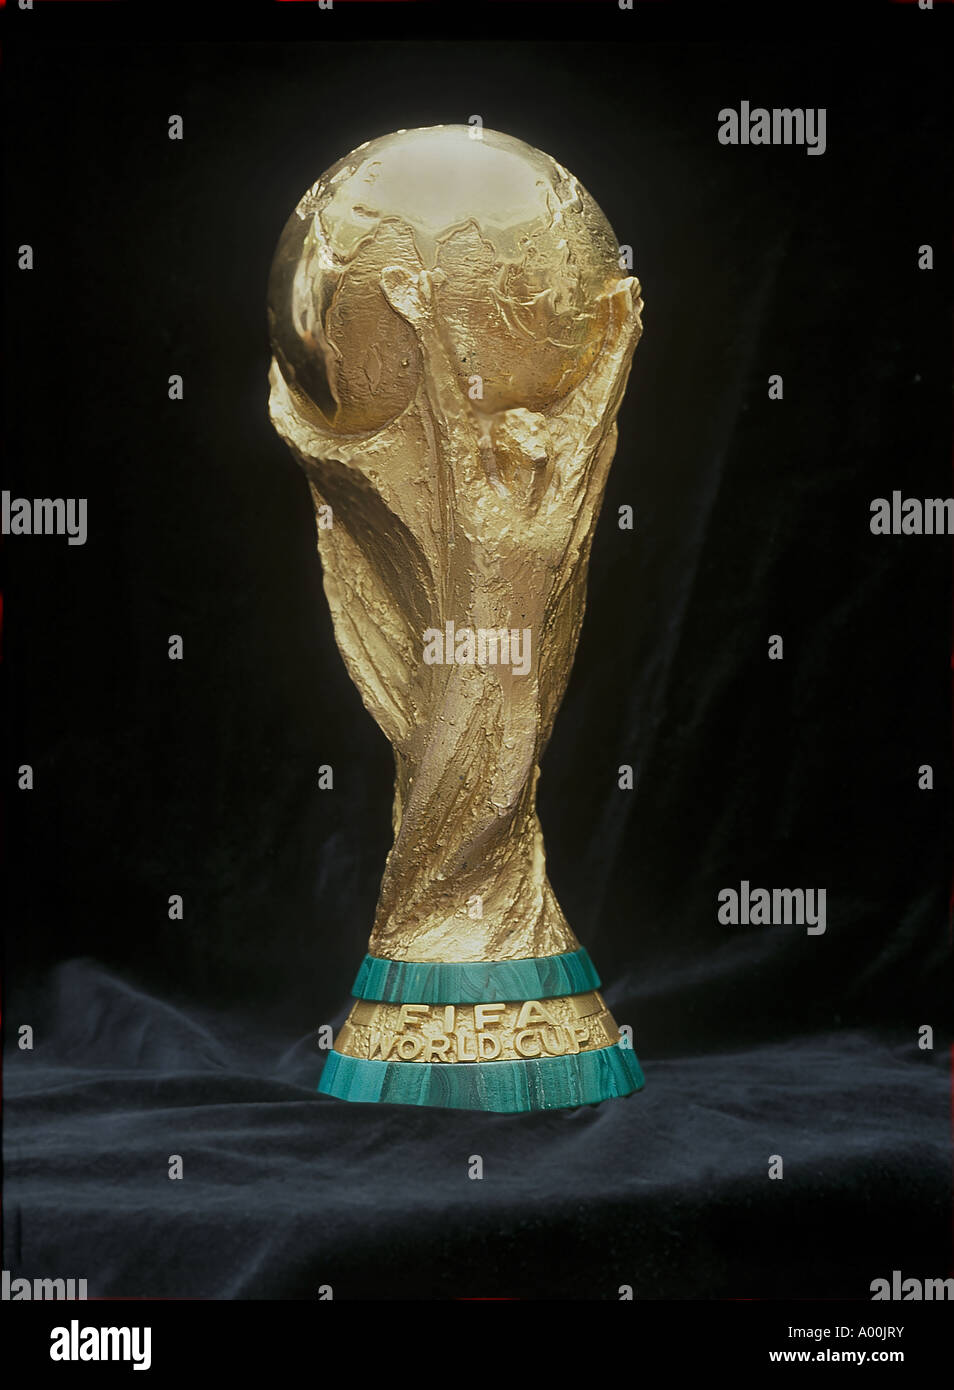 fifa world cup competed for by the football nations of the world On public display in London in 1995 Stock Photo